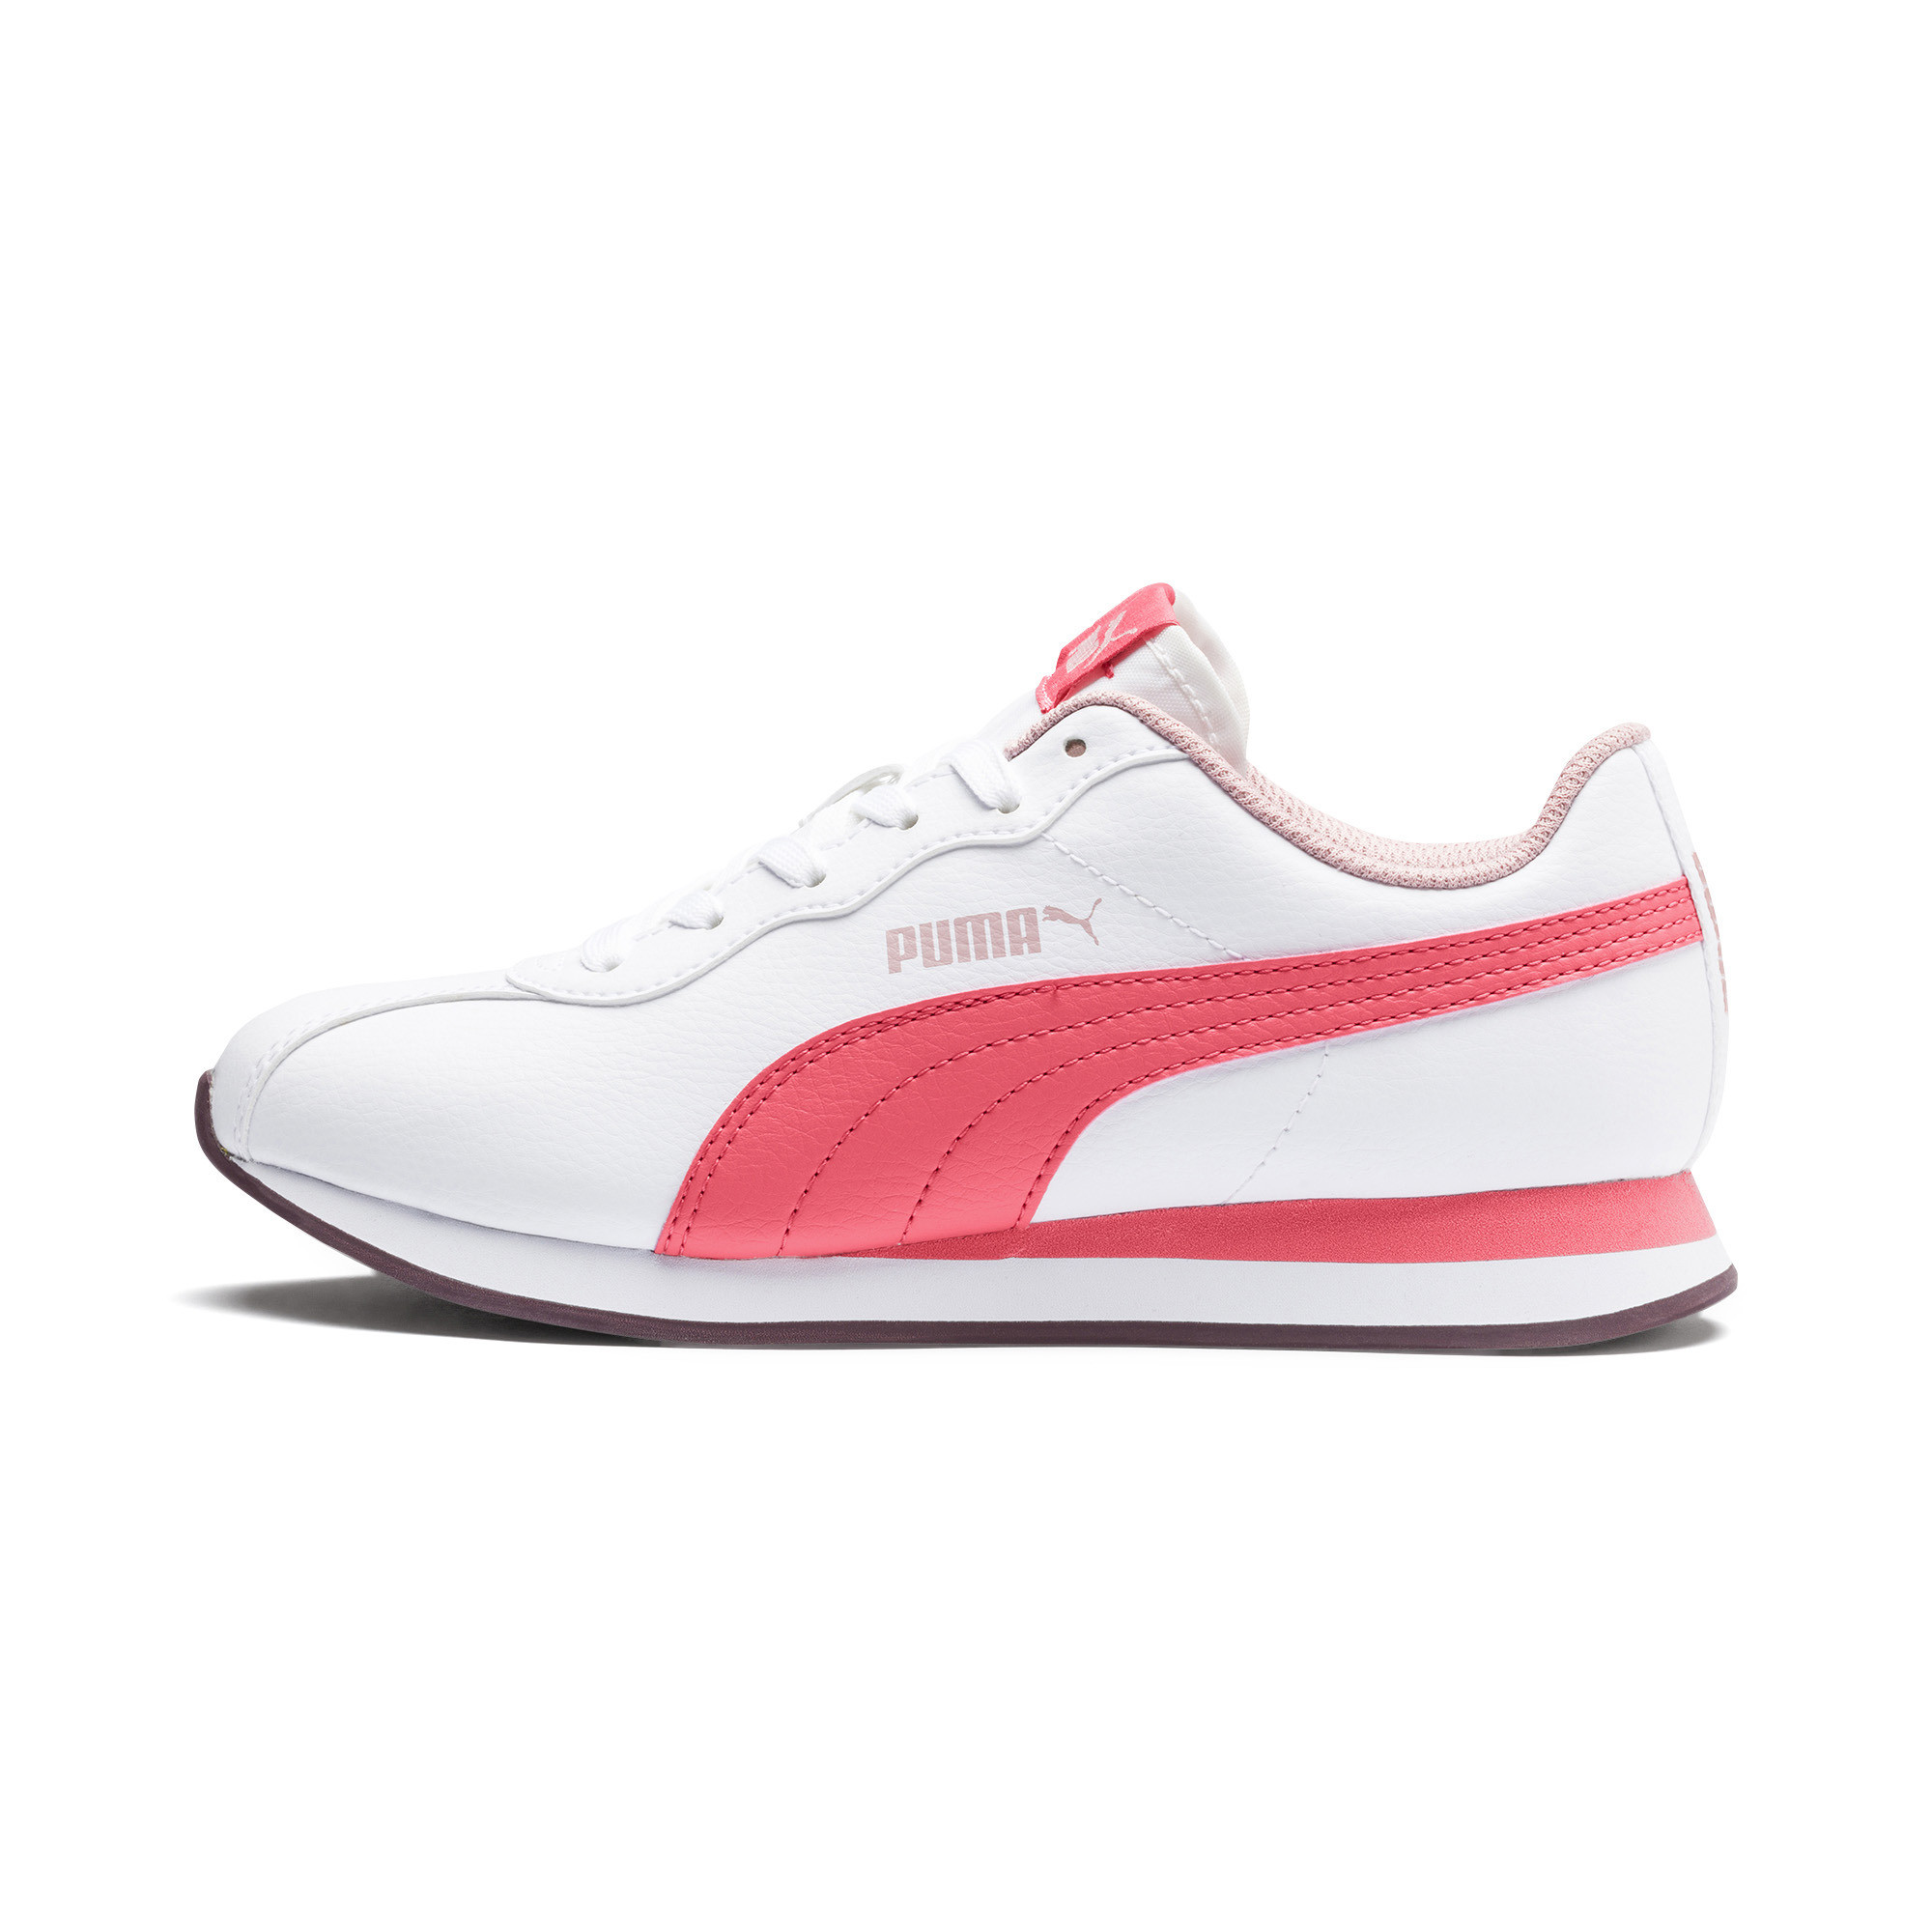 PUMA-Turin-II-Sneakers-JR-Kids-Shoe-Kids thumbnail 22